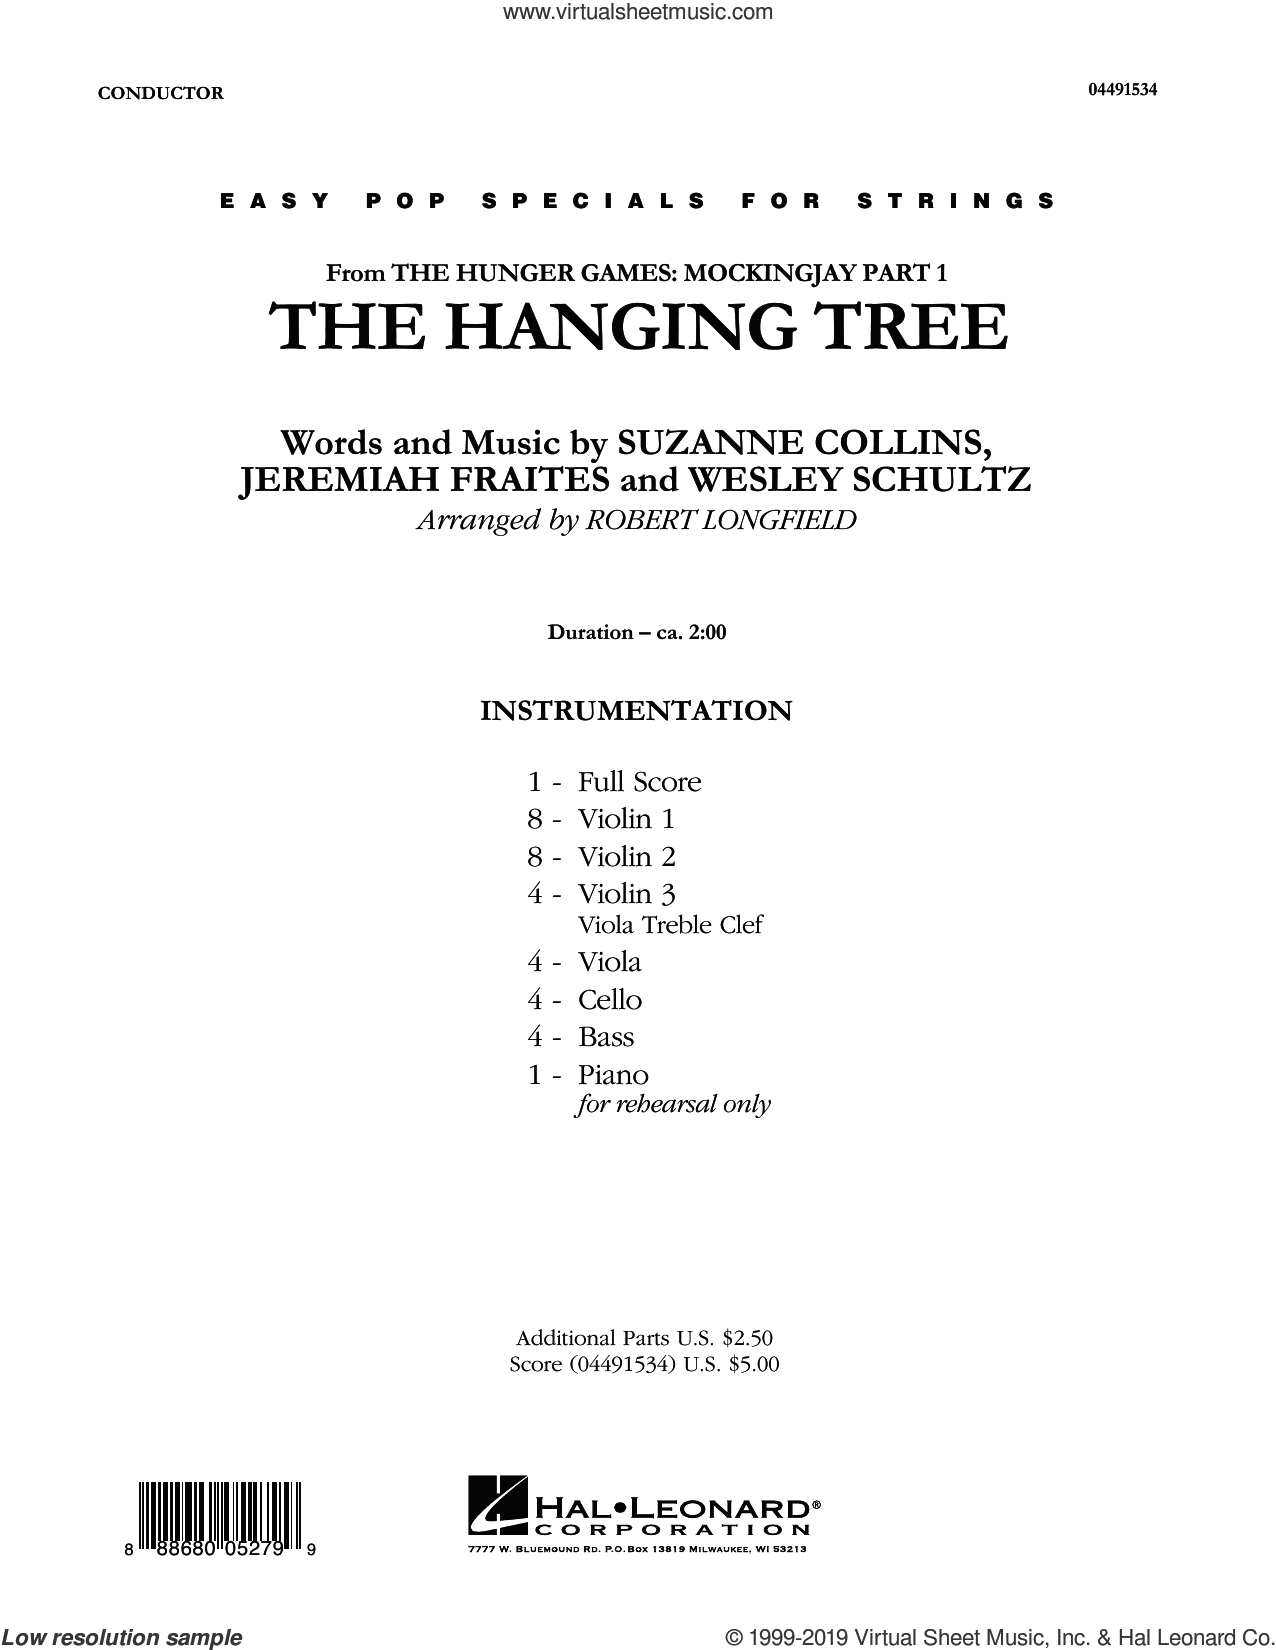 The Hanging Tree (COMPLETE) sheet music for orchestra by Robert Longfield, James Newton Howard, Jennifer Lawrence, Jeremiah Fraites, Suzanne Collins and Wesley Schultz, intermediate skill level